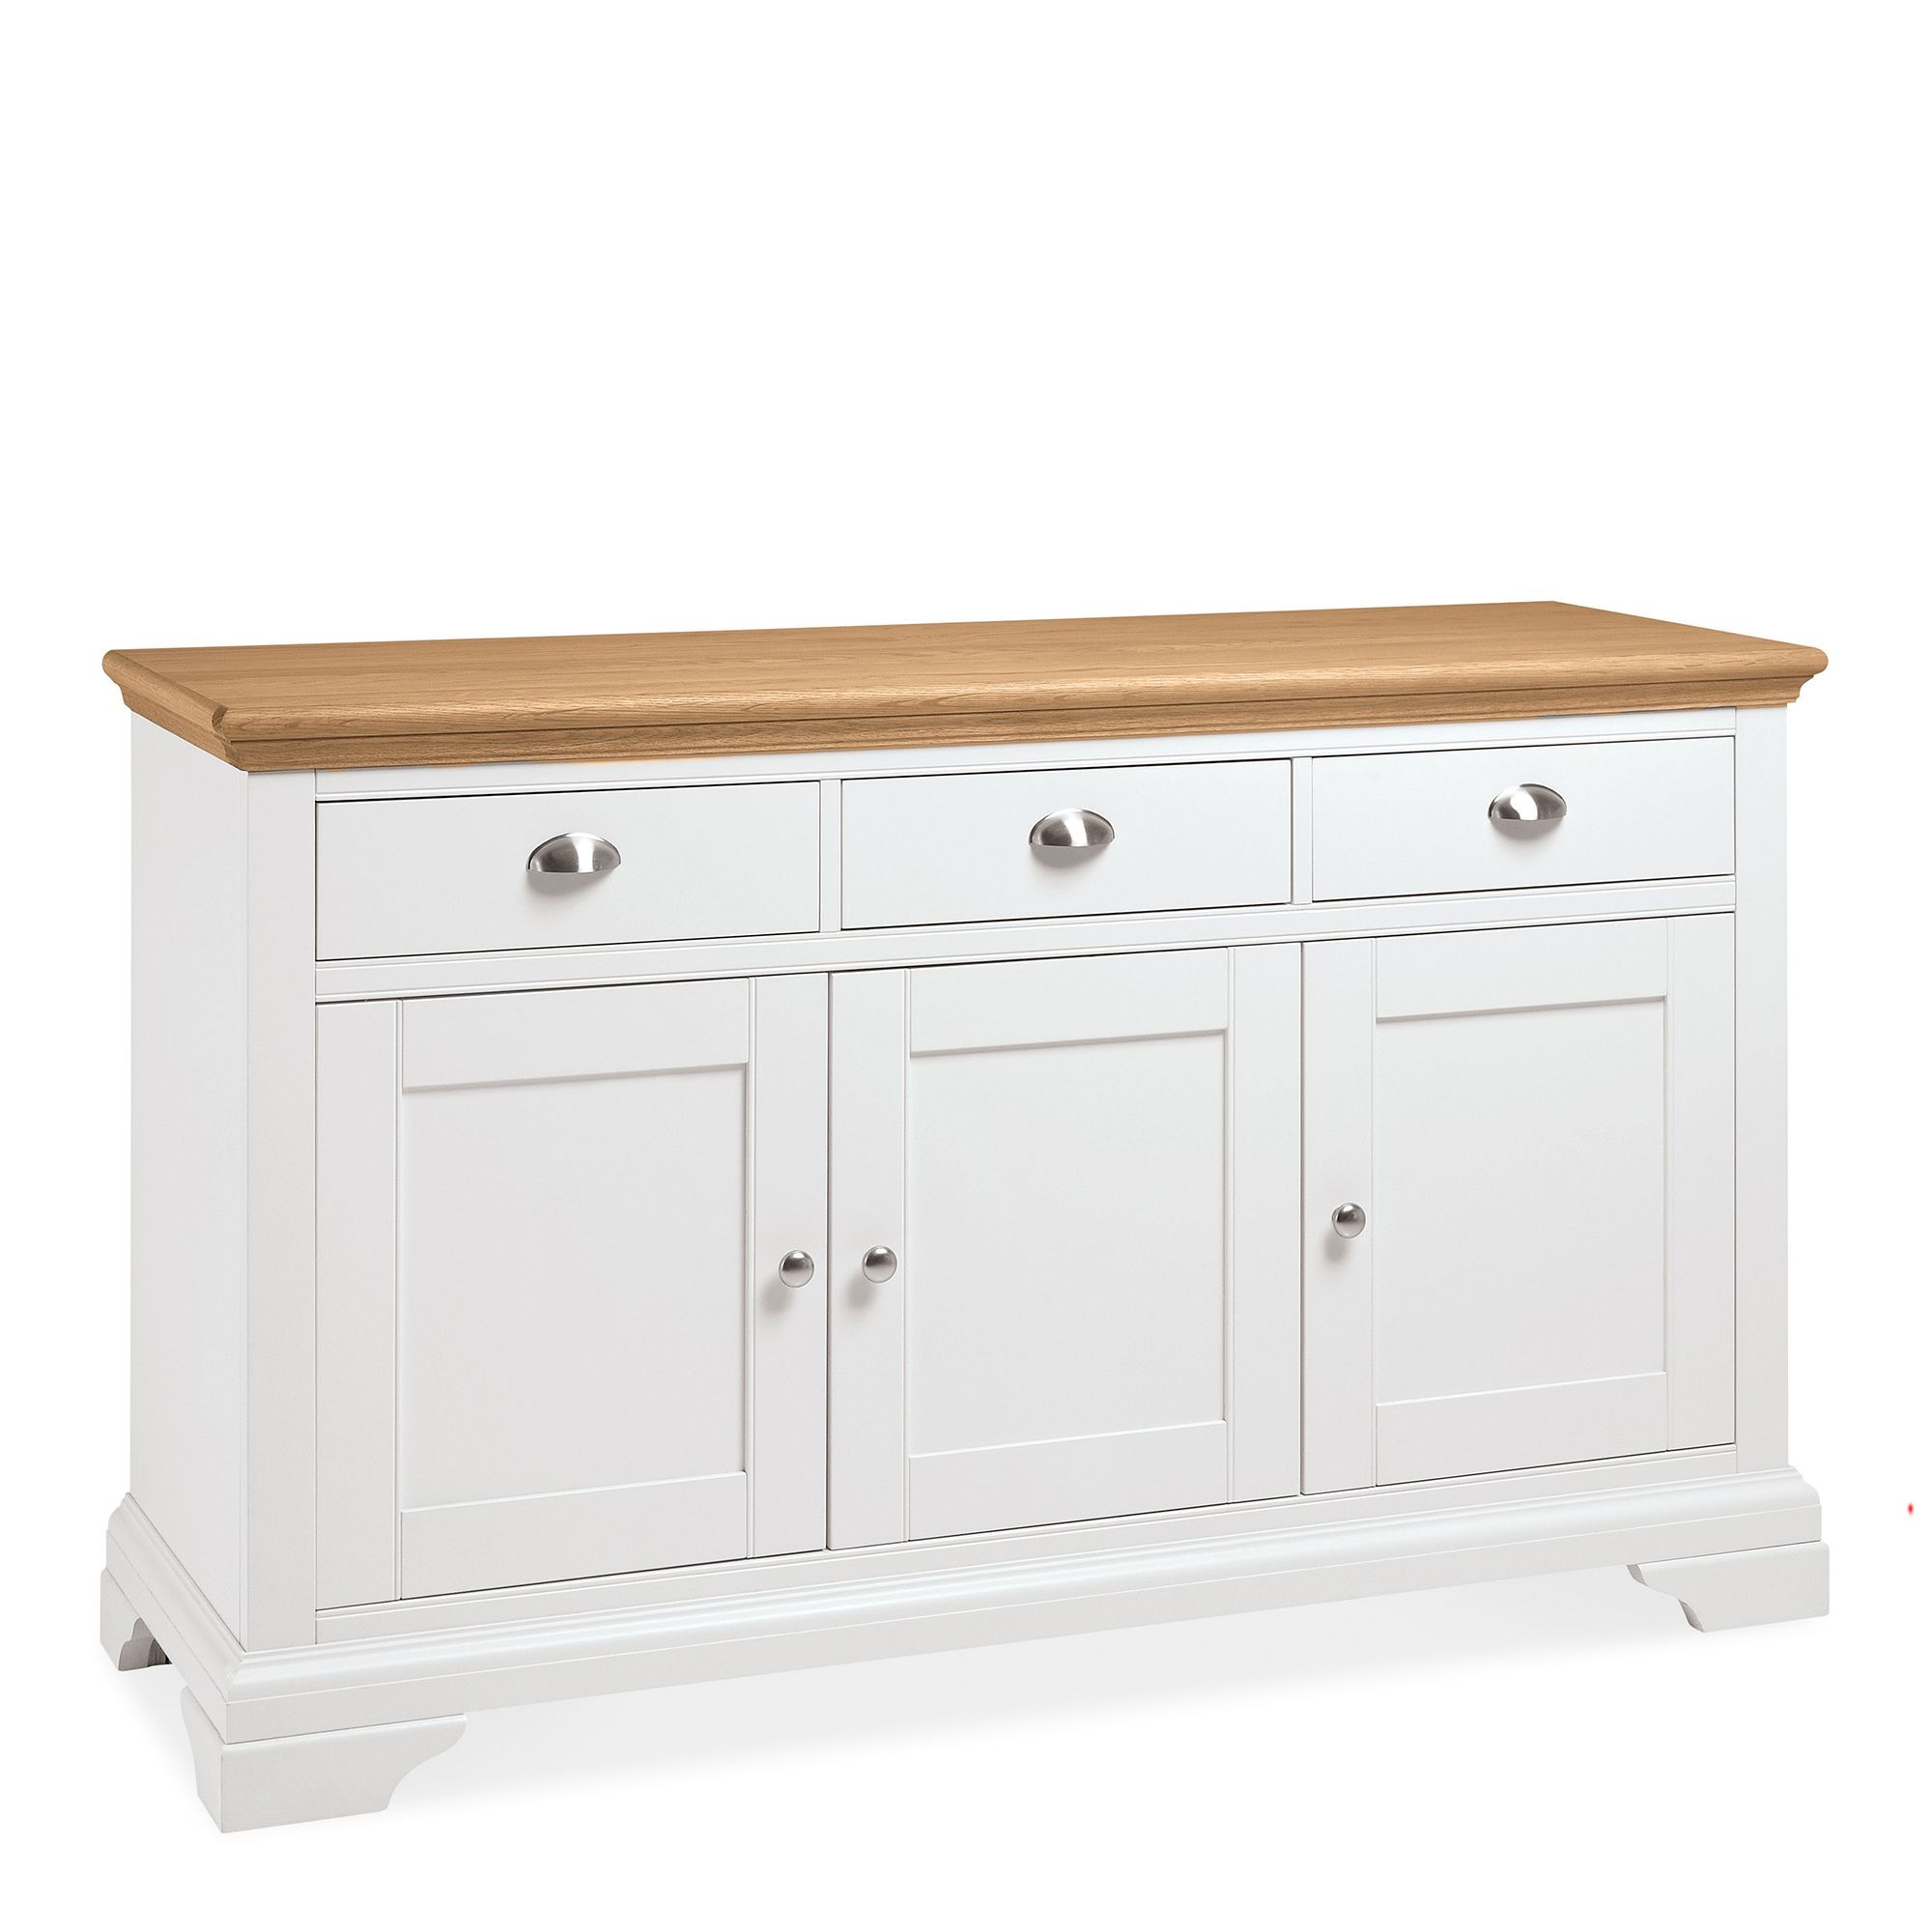 KYRA TWO TONE WIDE SIDEBOARD L148cm x D48cm x H88cm